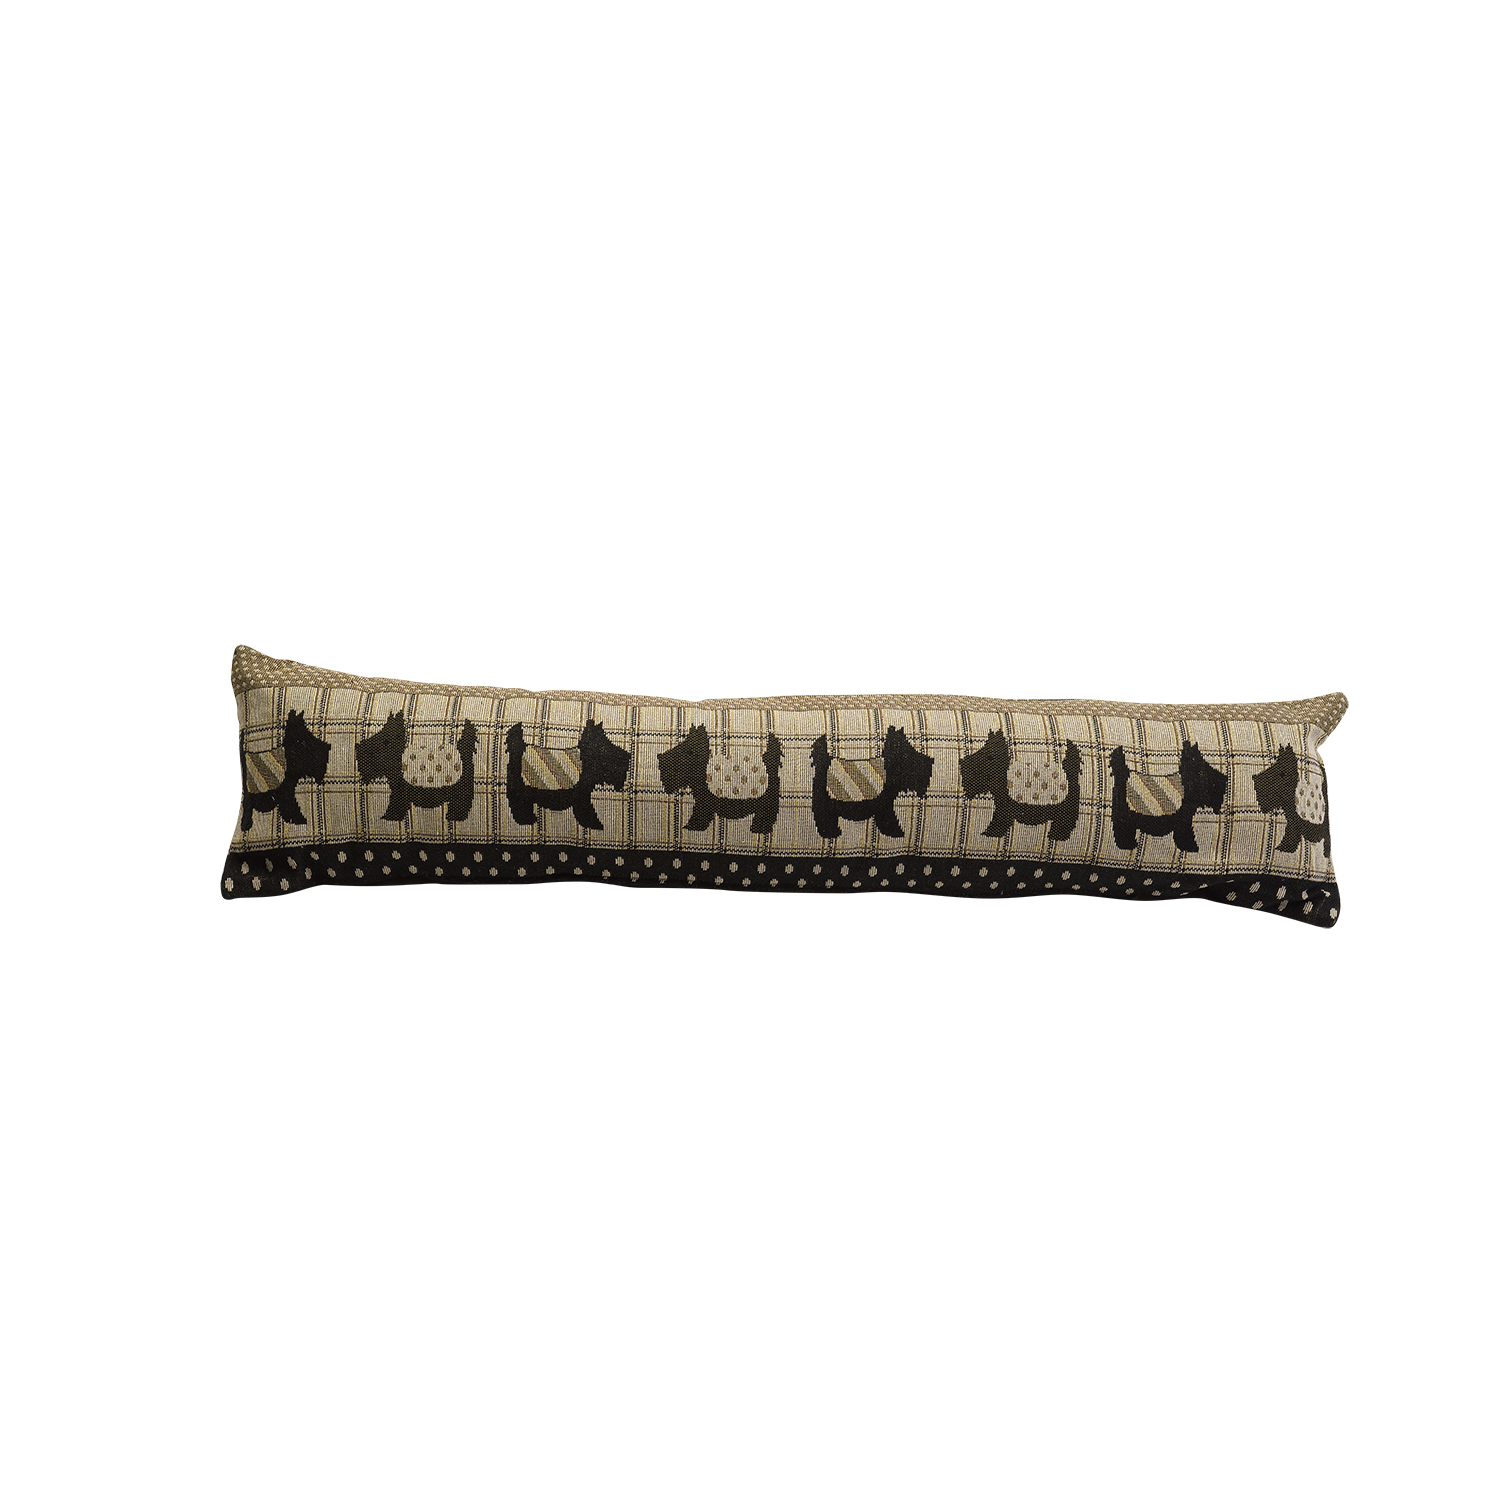 Scottie Dogs Animal Design Draught Excluder Tapestry Style Fabric Door Cushion  sc 1 st  eBay & Scottie Dogs Animal Design Draught Excluder Tapestry Style Fabric ...